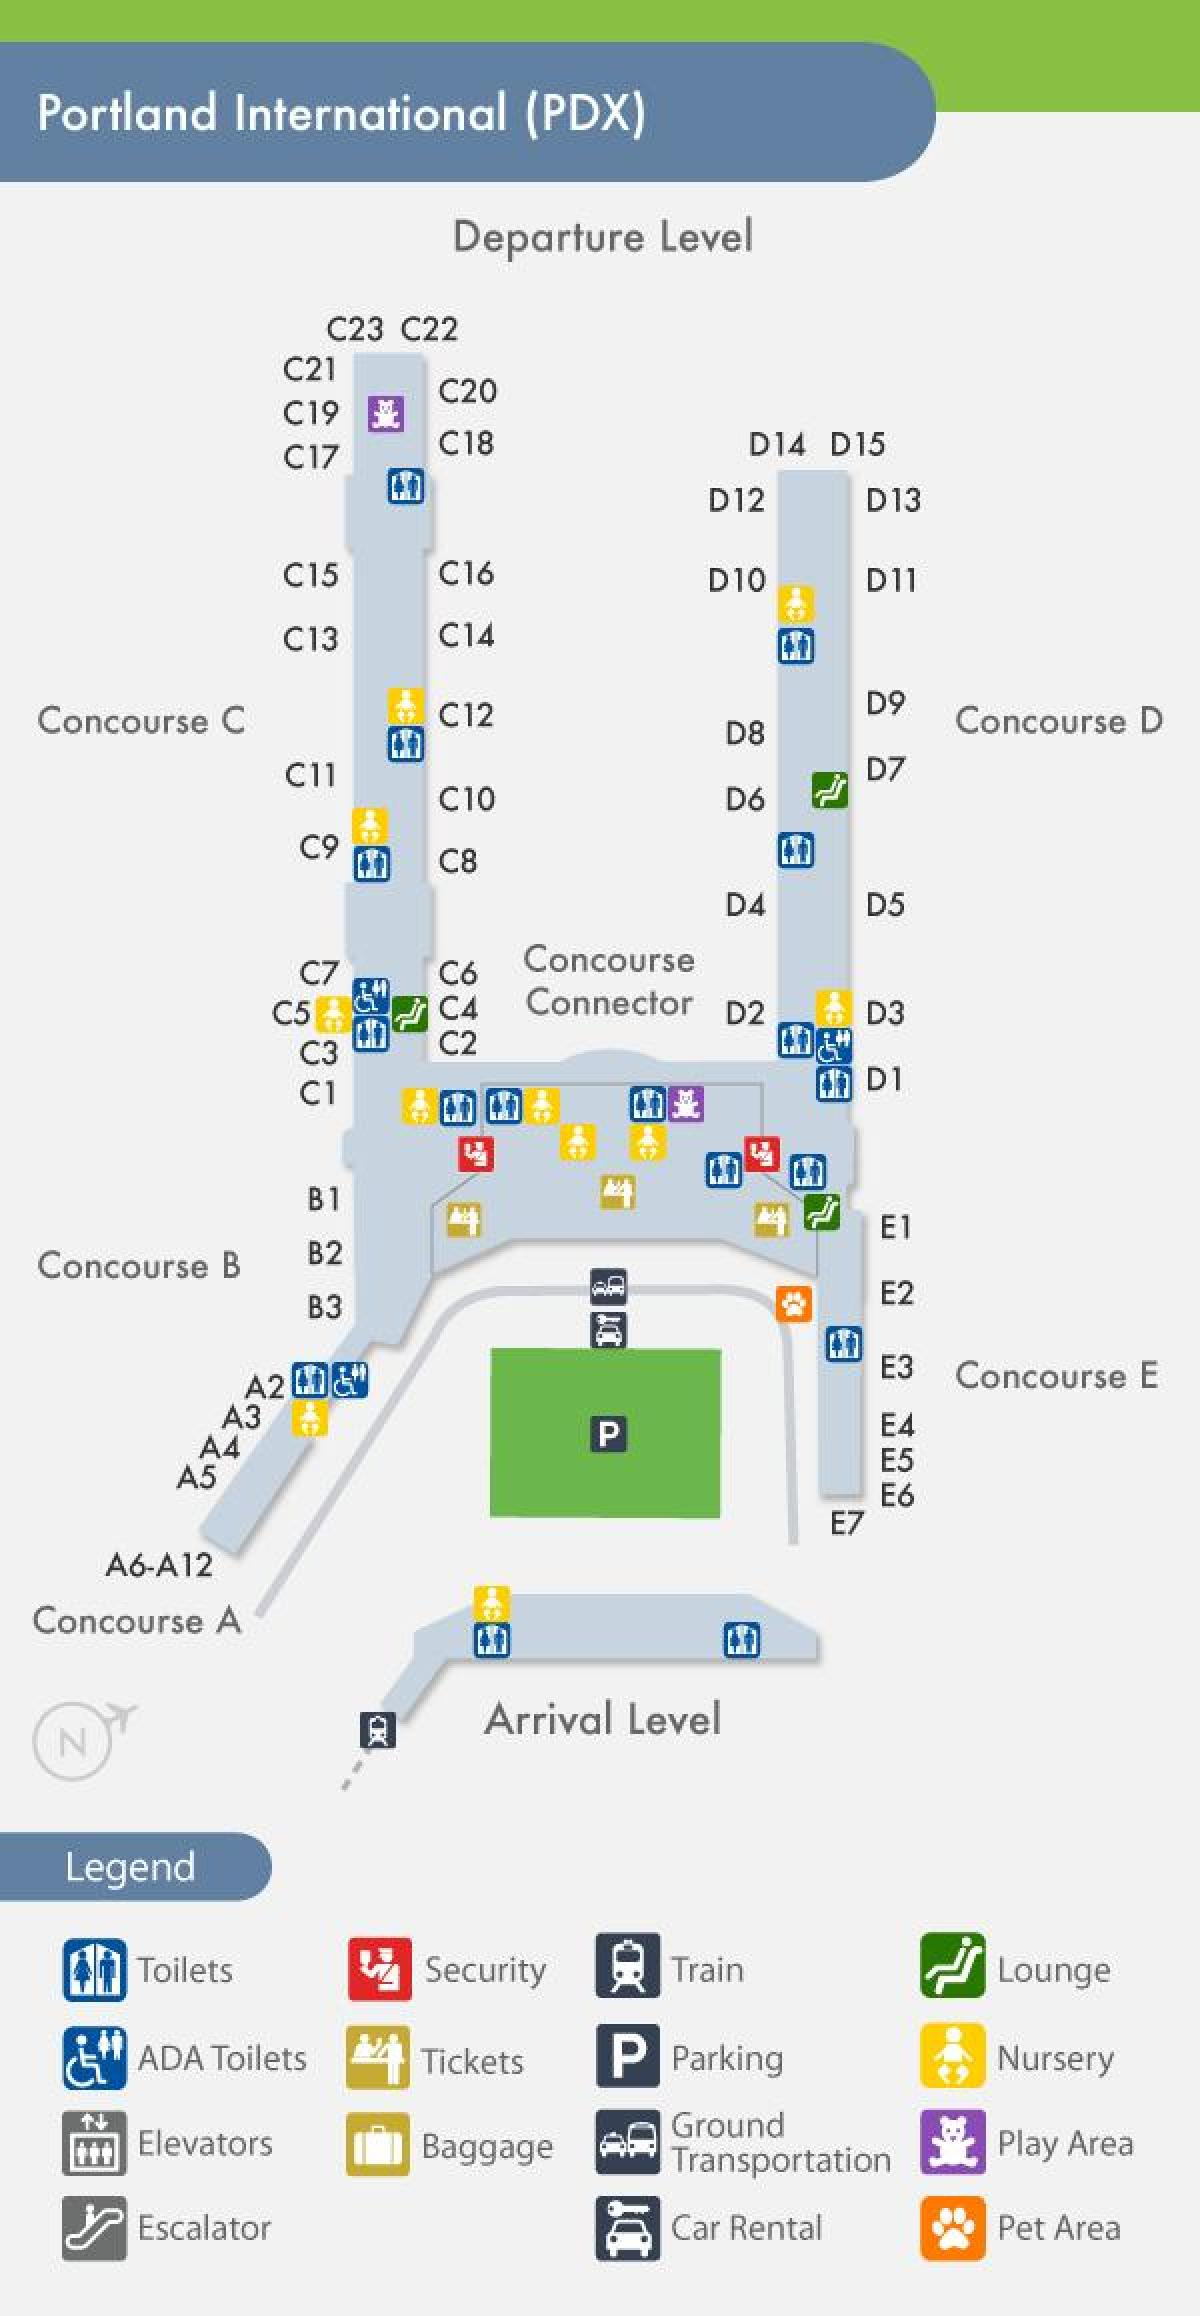 PDX map of airport